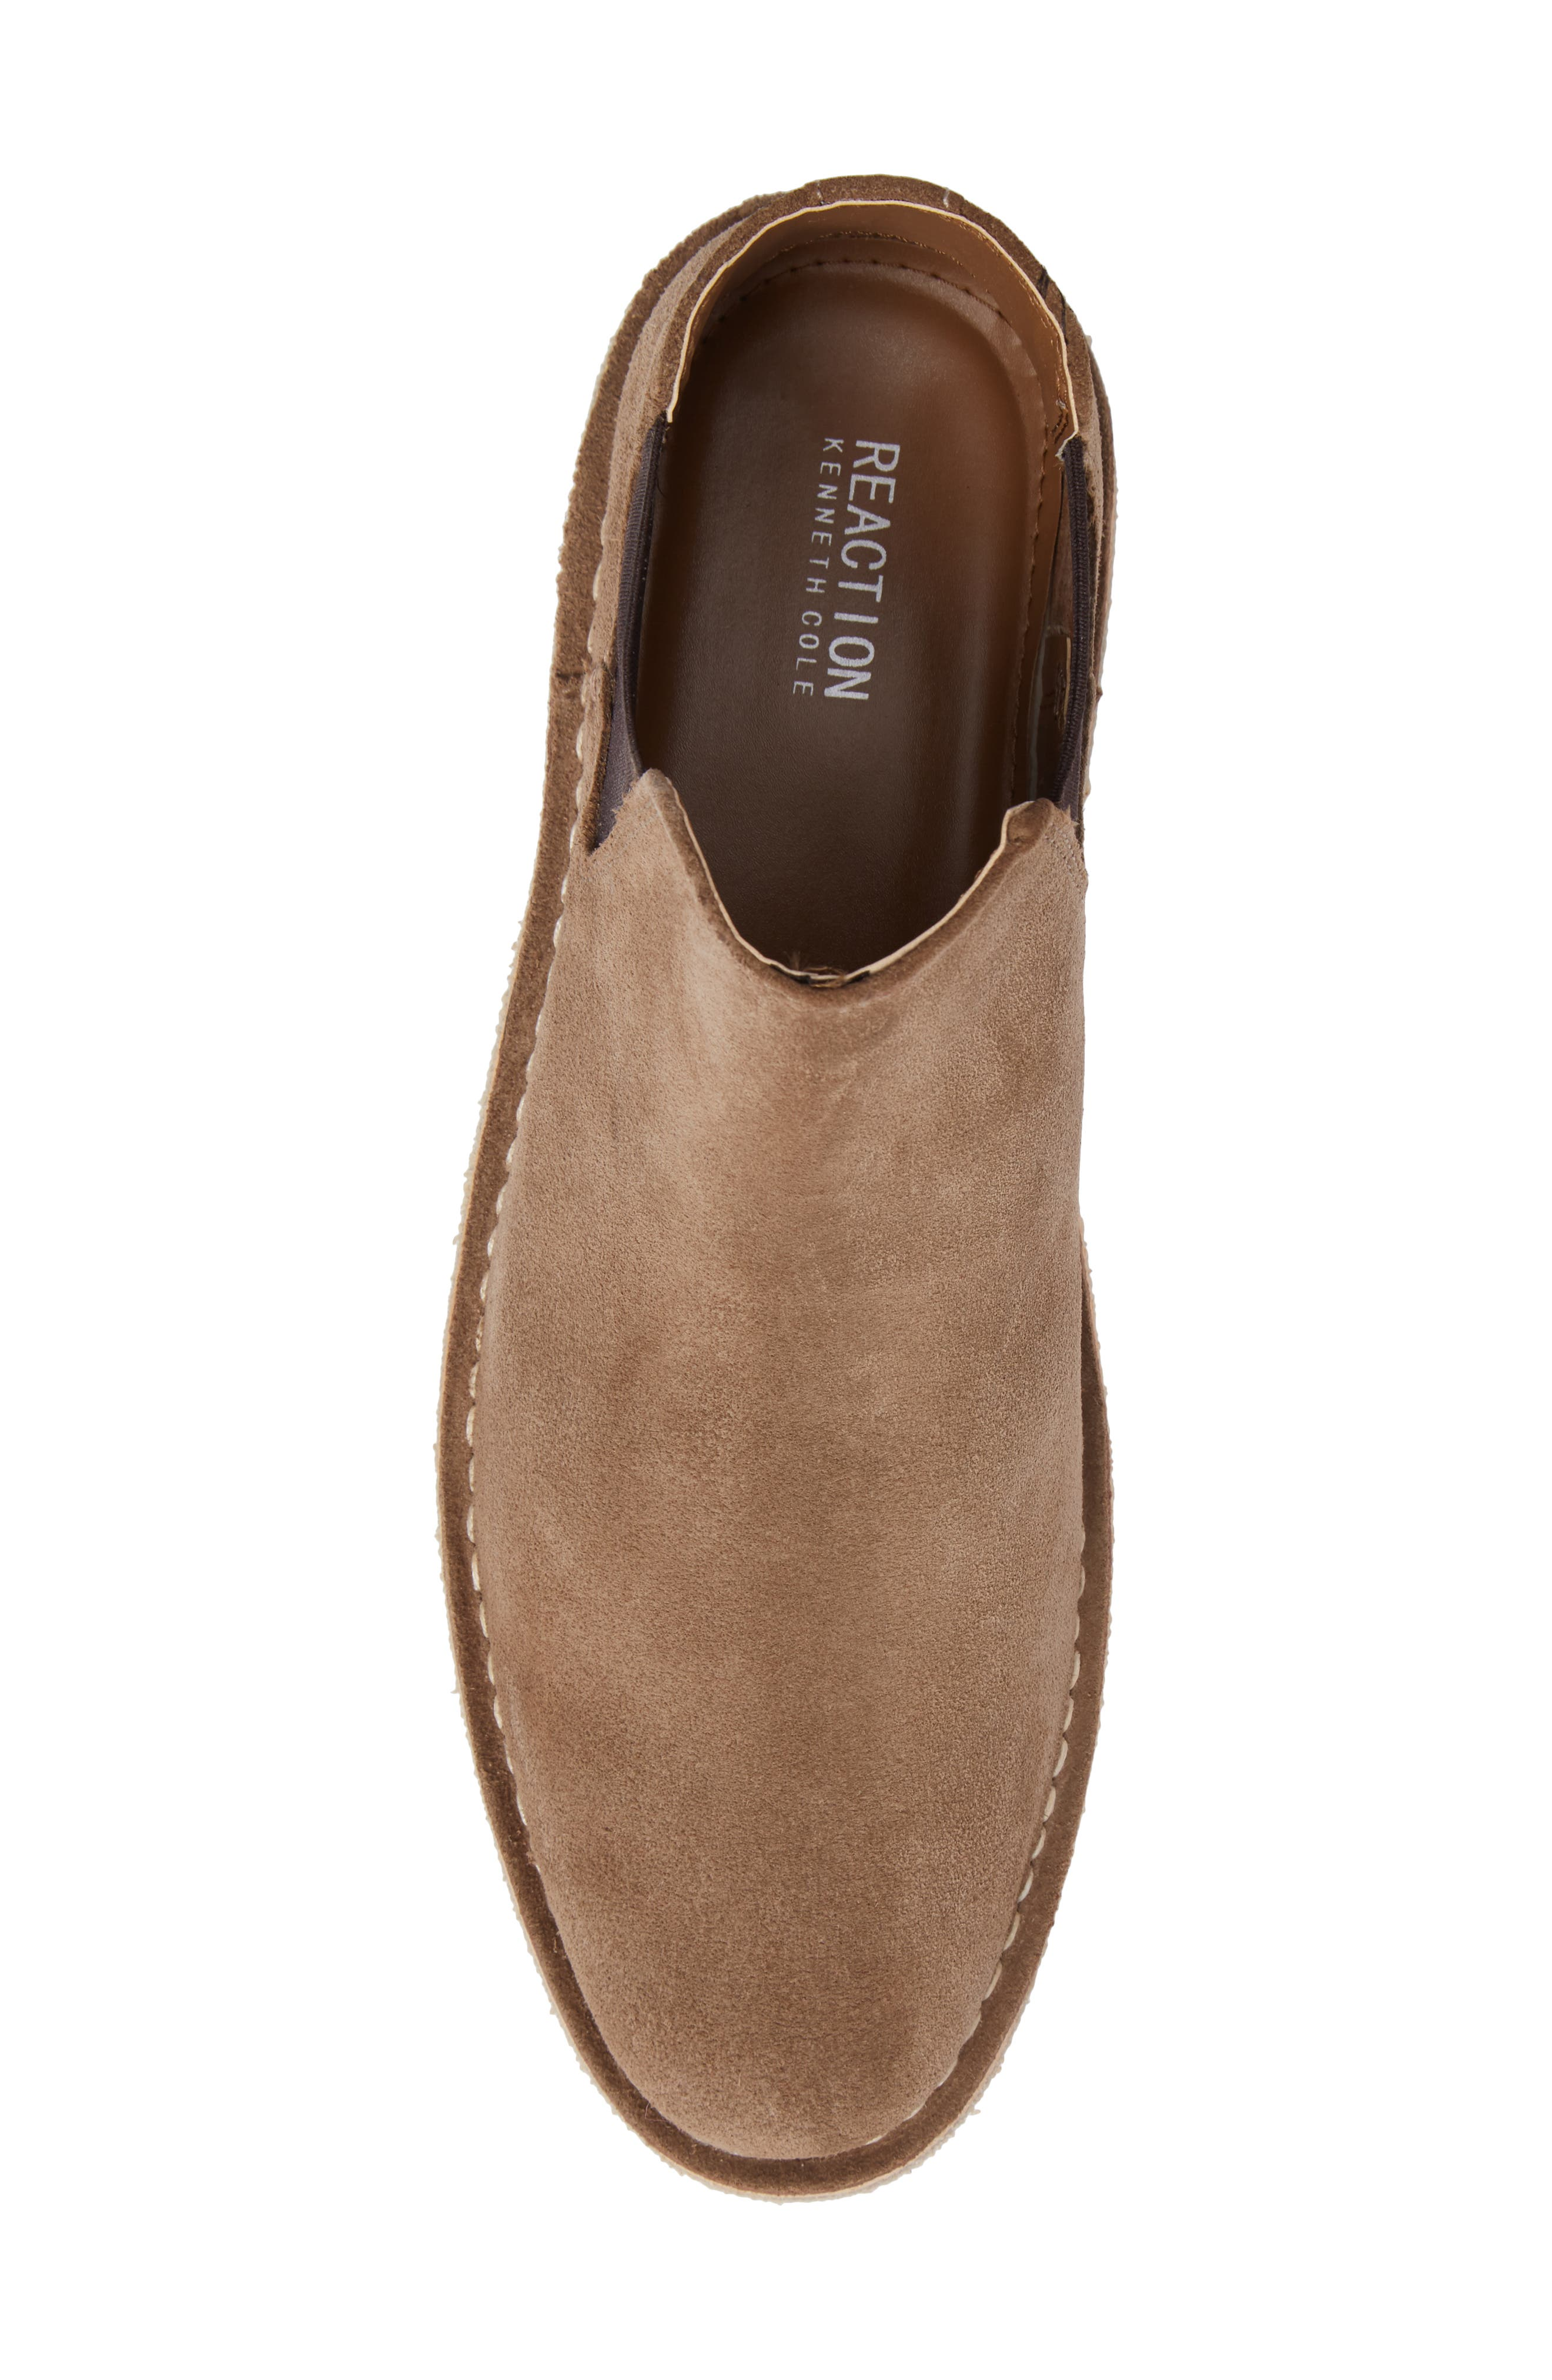 Kenneth Cole Reaction Chelsea Boot,                             Alternate thumbnail 5, color,                             205